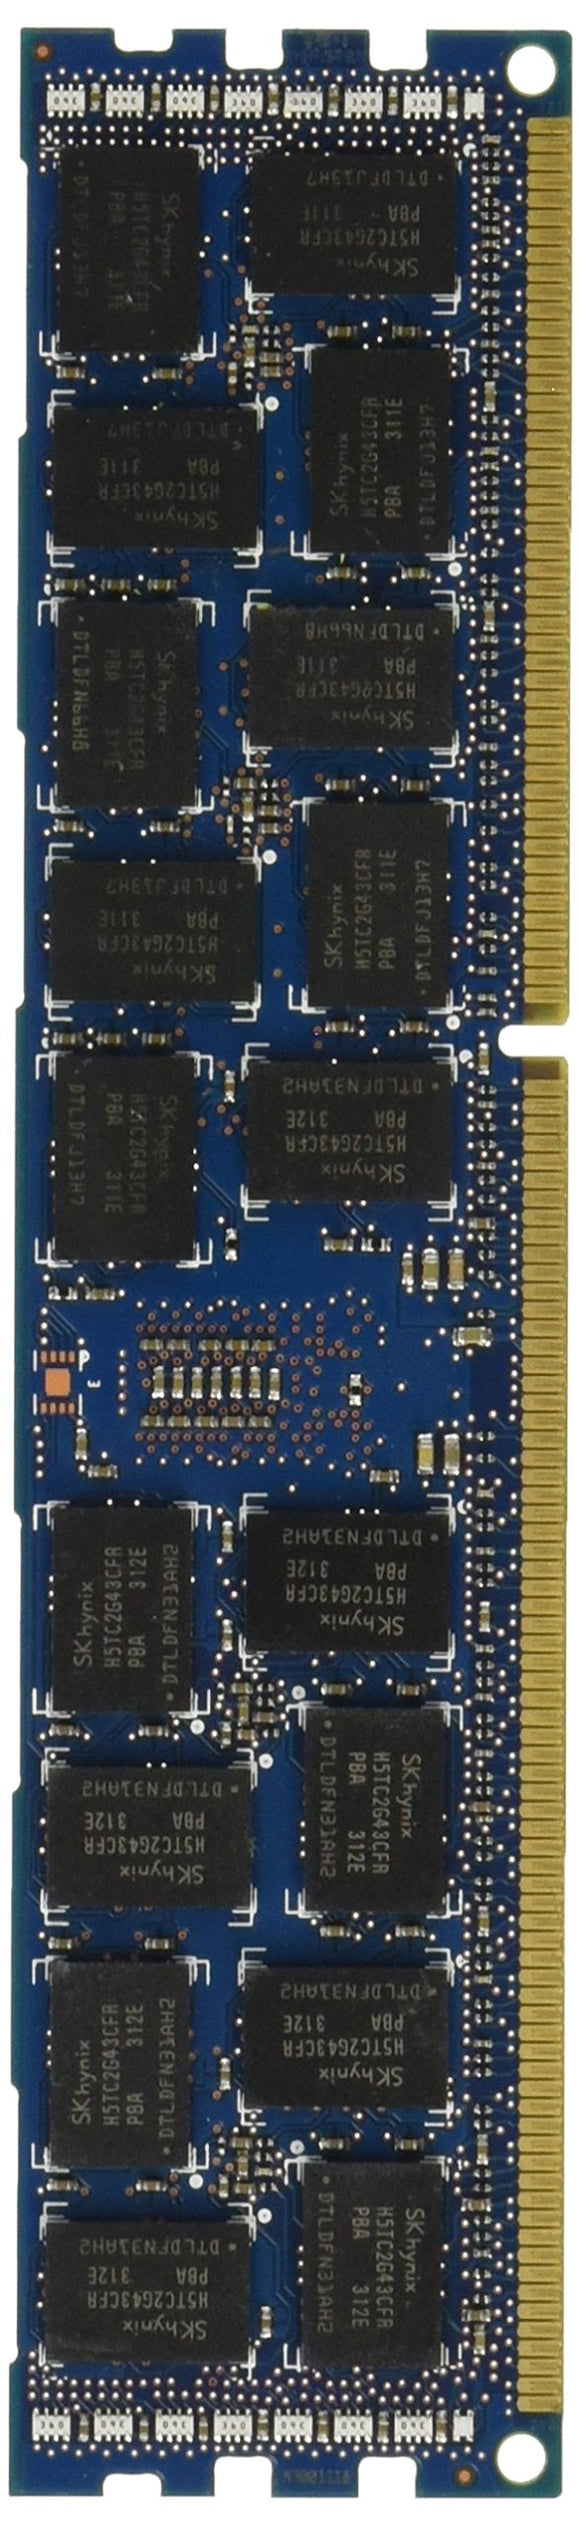 8gb Ddr3-1600mhz 240pin Rdimm Dual Rank Factory Original